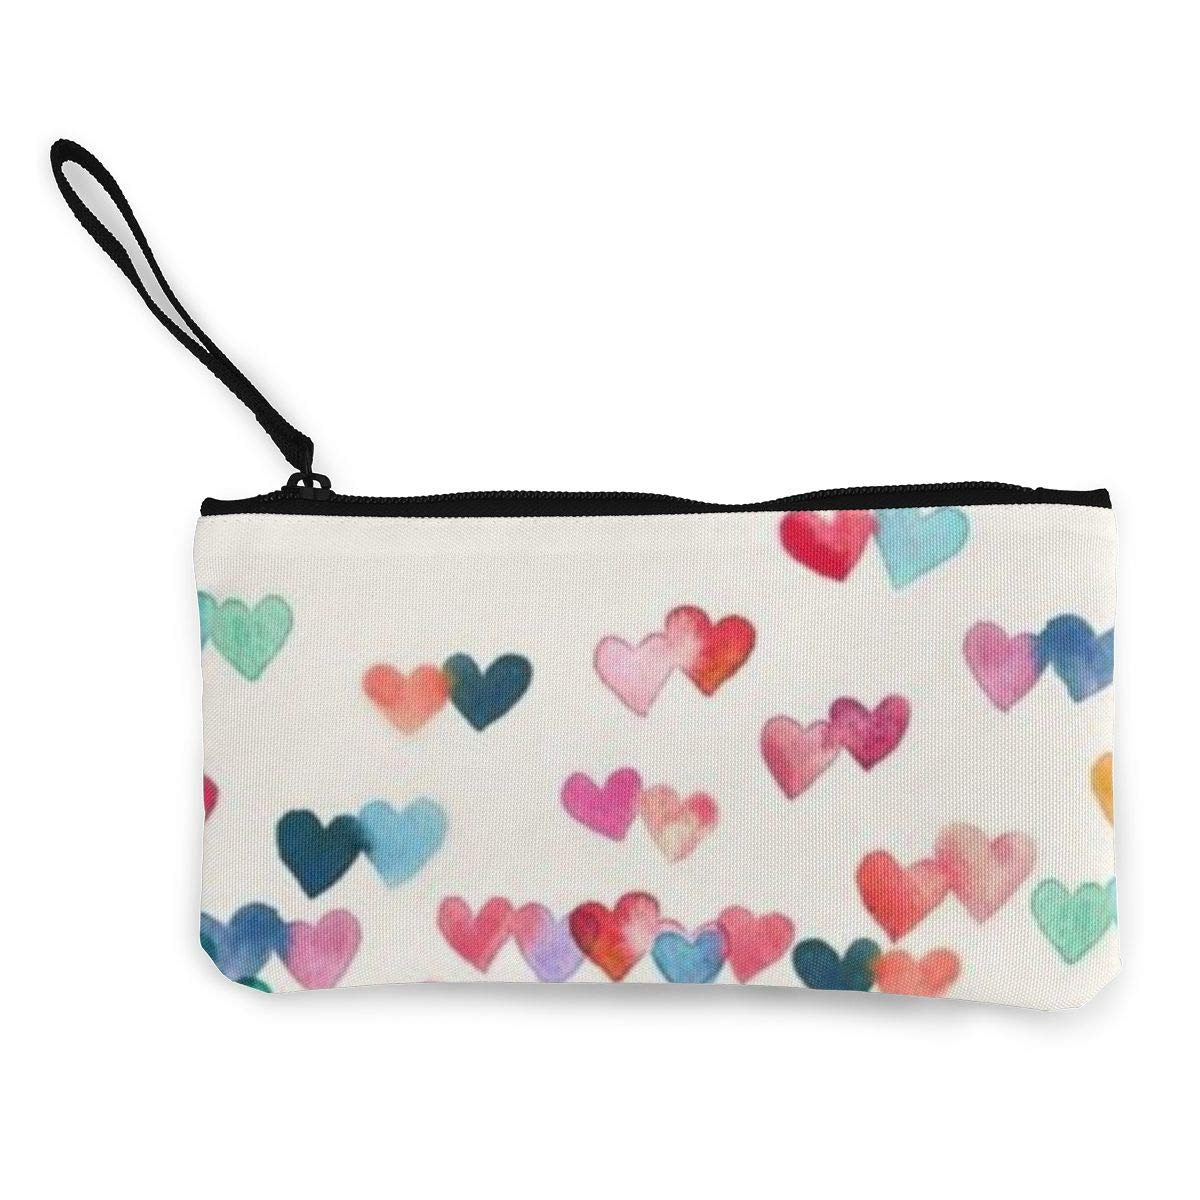 Canvas Cash Coin Purse,Red And Blue Heart Print Make Up Bag Zipper Small Purse Wallets